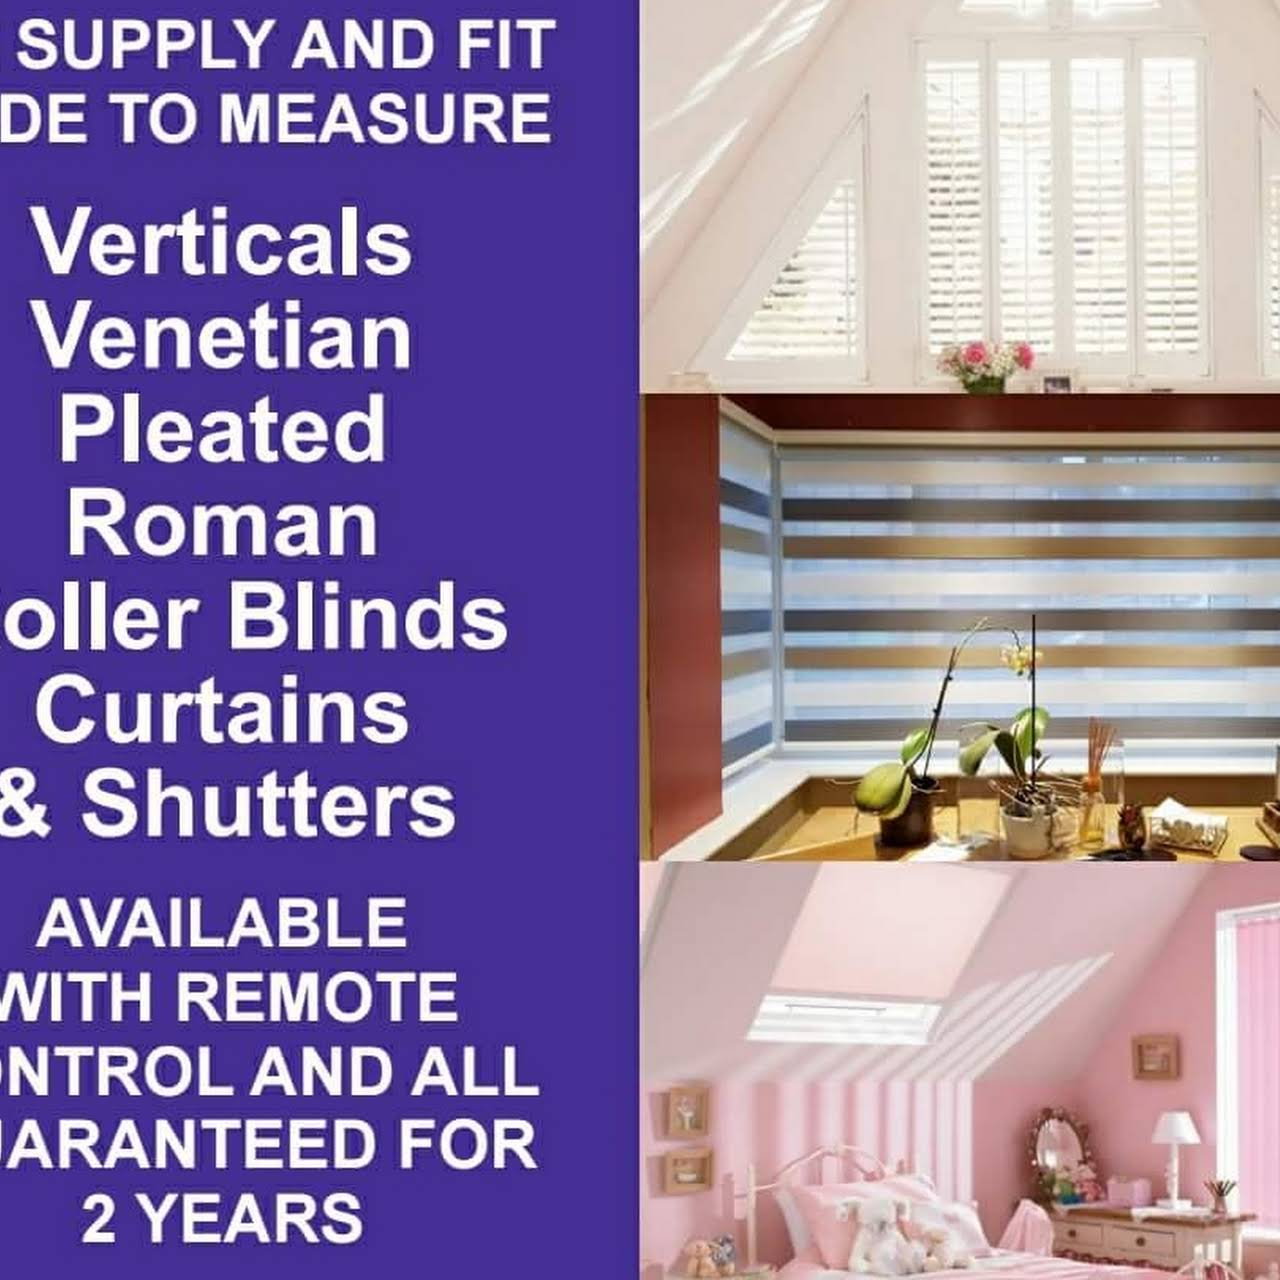 conservatory bespoke company free quotation a home today for roller us trusted no than in simply bristol further obligation look contact blinds